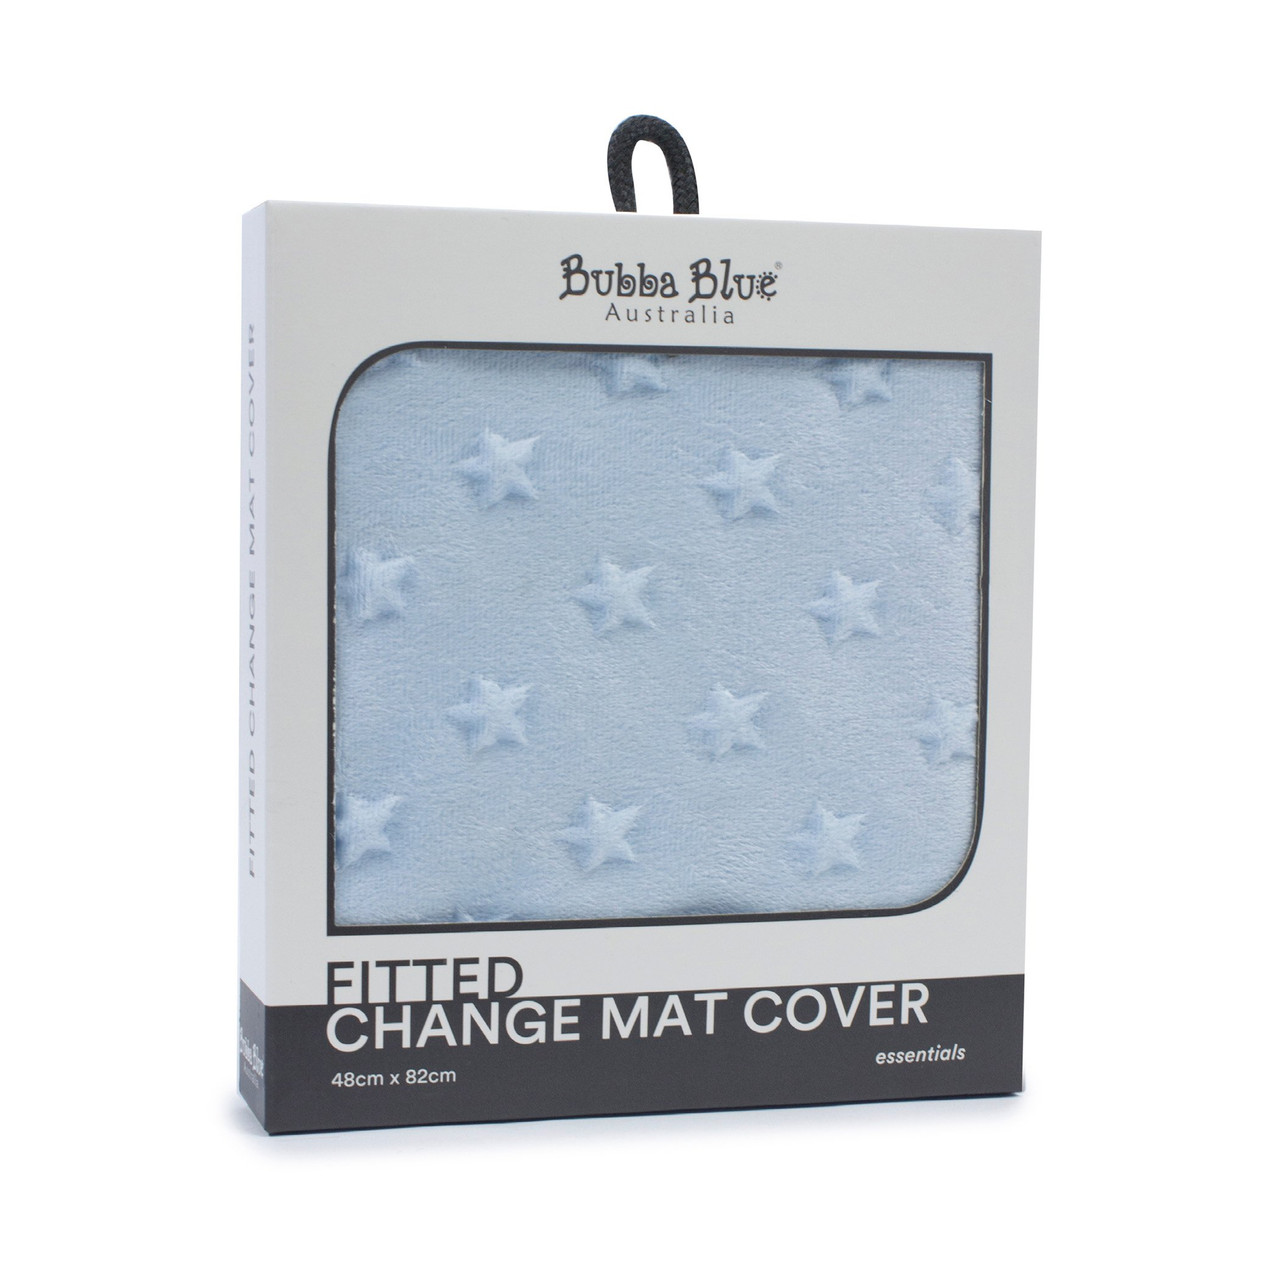 Bubba Blue Sherpa Change Mat Cover BLUE at Baby Barn Discounts Bubba Blue elasticized fit best selling change mat cover, these change mat covers and super soft and fit most change pads.